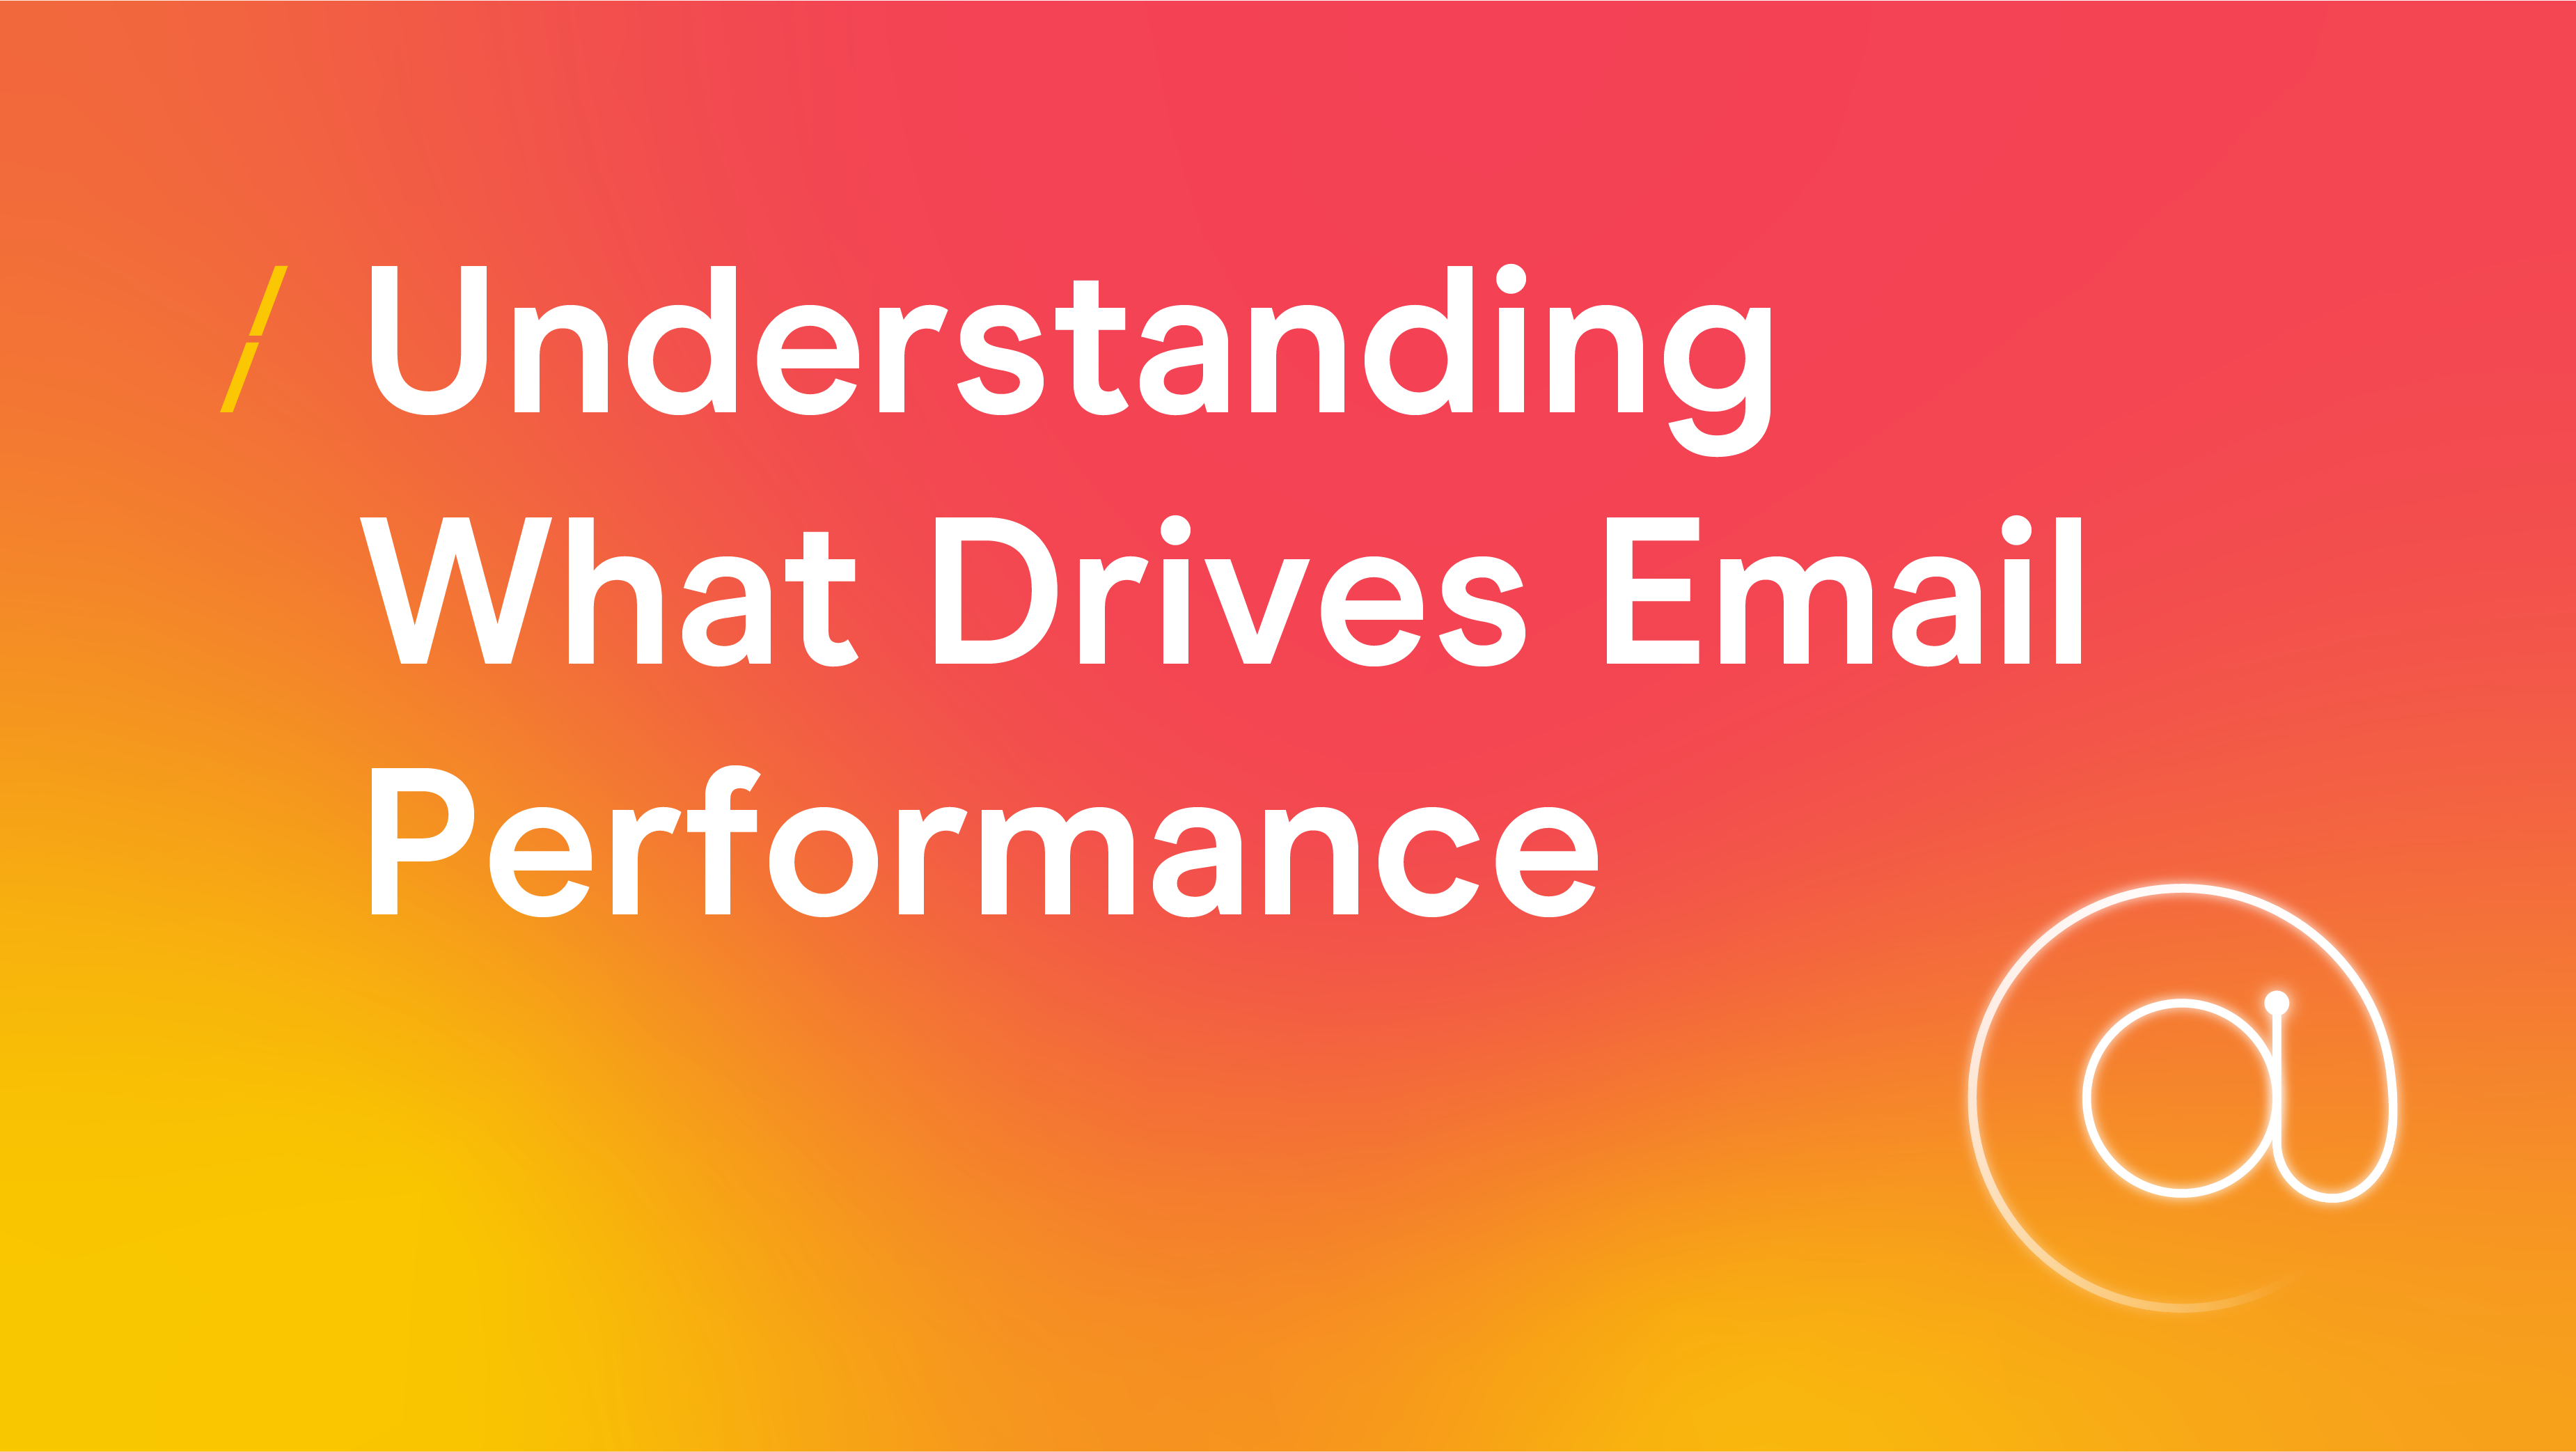 Understanding What Drives Email Performance_Research articles copy 2 (002).png